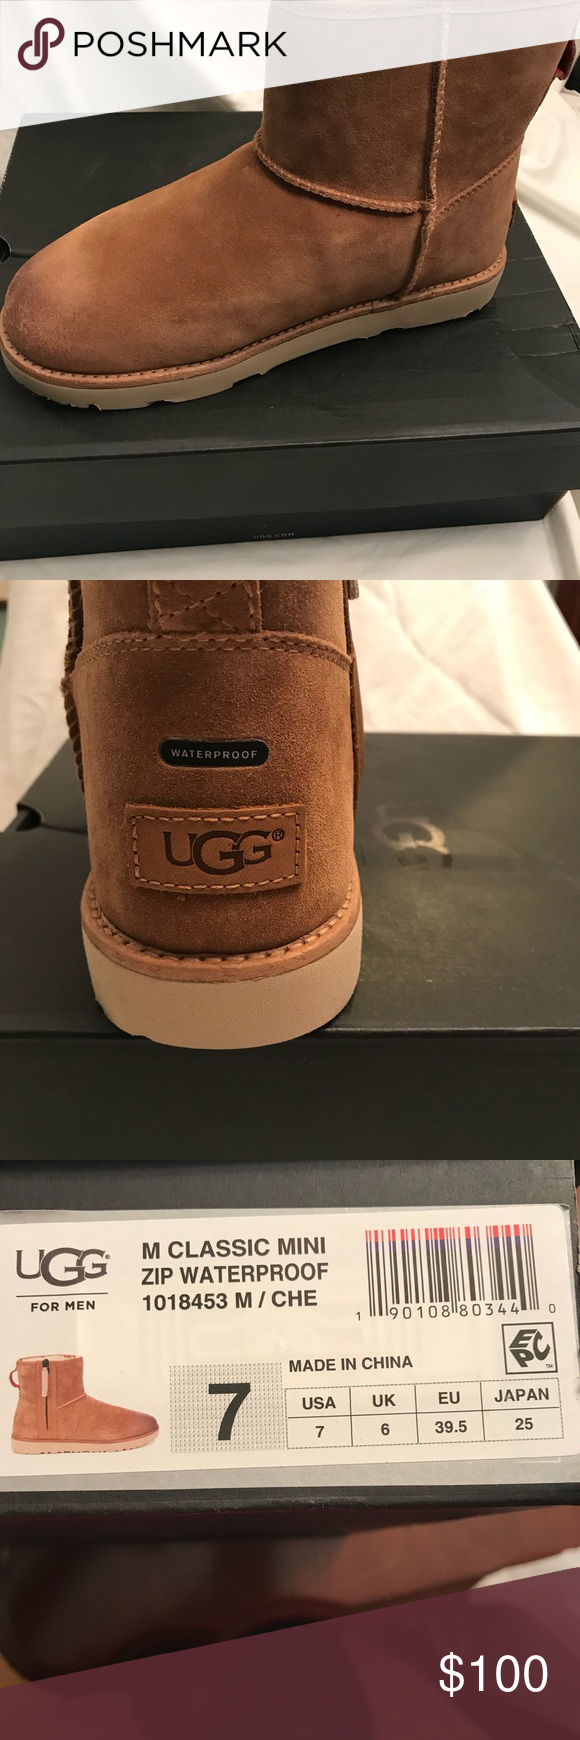 Brand New Ugg For Men Classic Mini Zip Boots Ladies You Can Wear